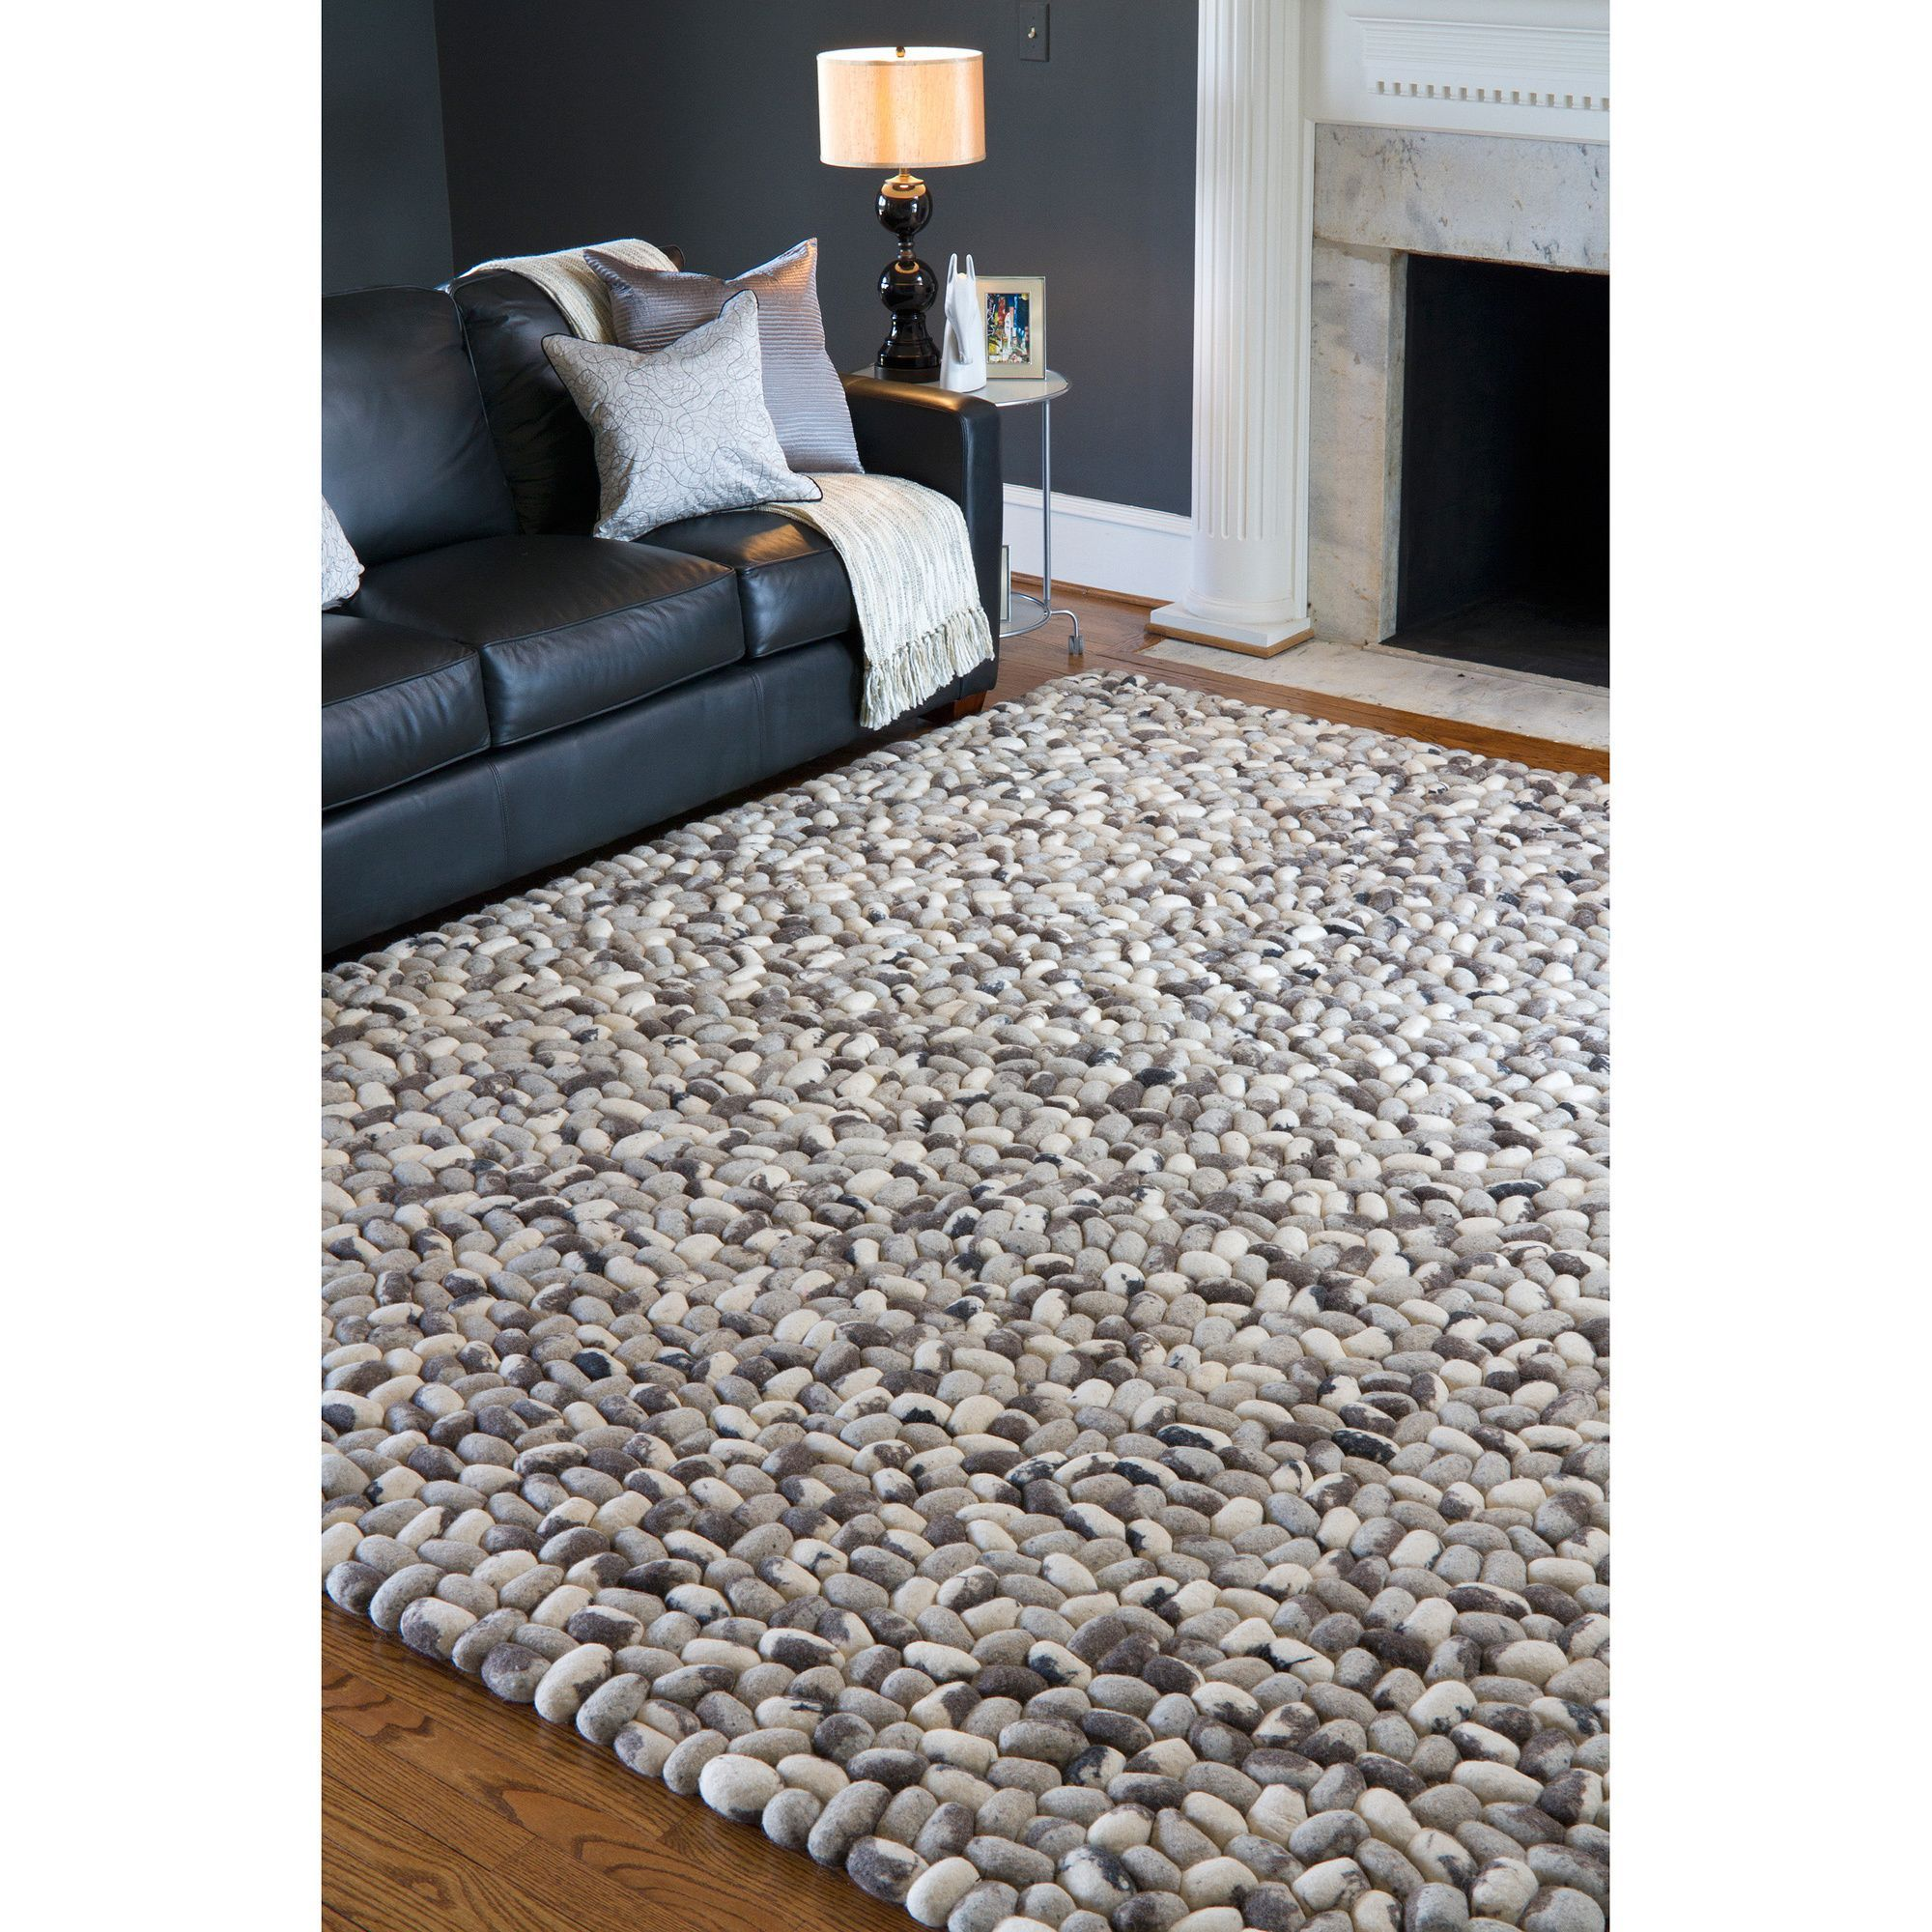 Hand Woven Of New Zealand Felted Wool This Rug Puts A Spin On The